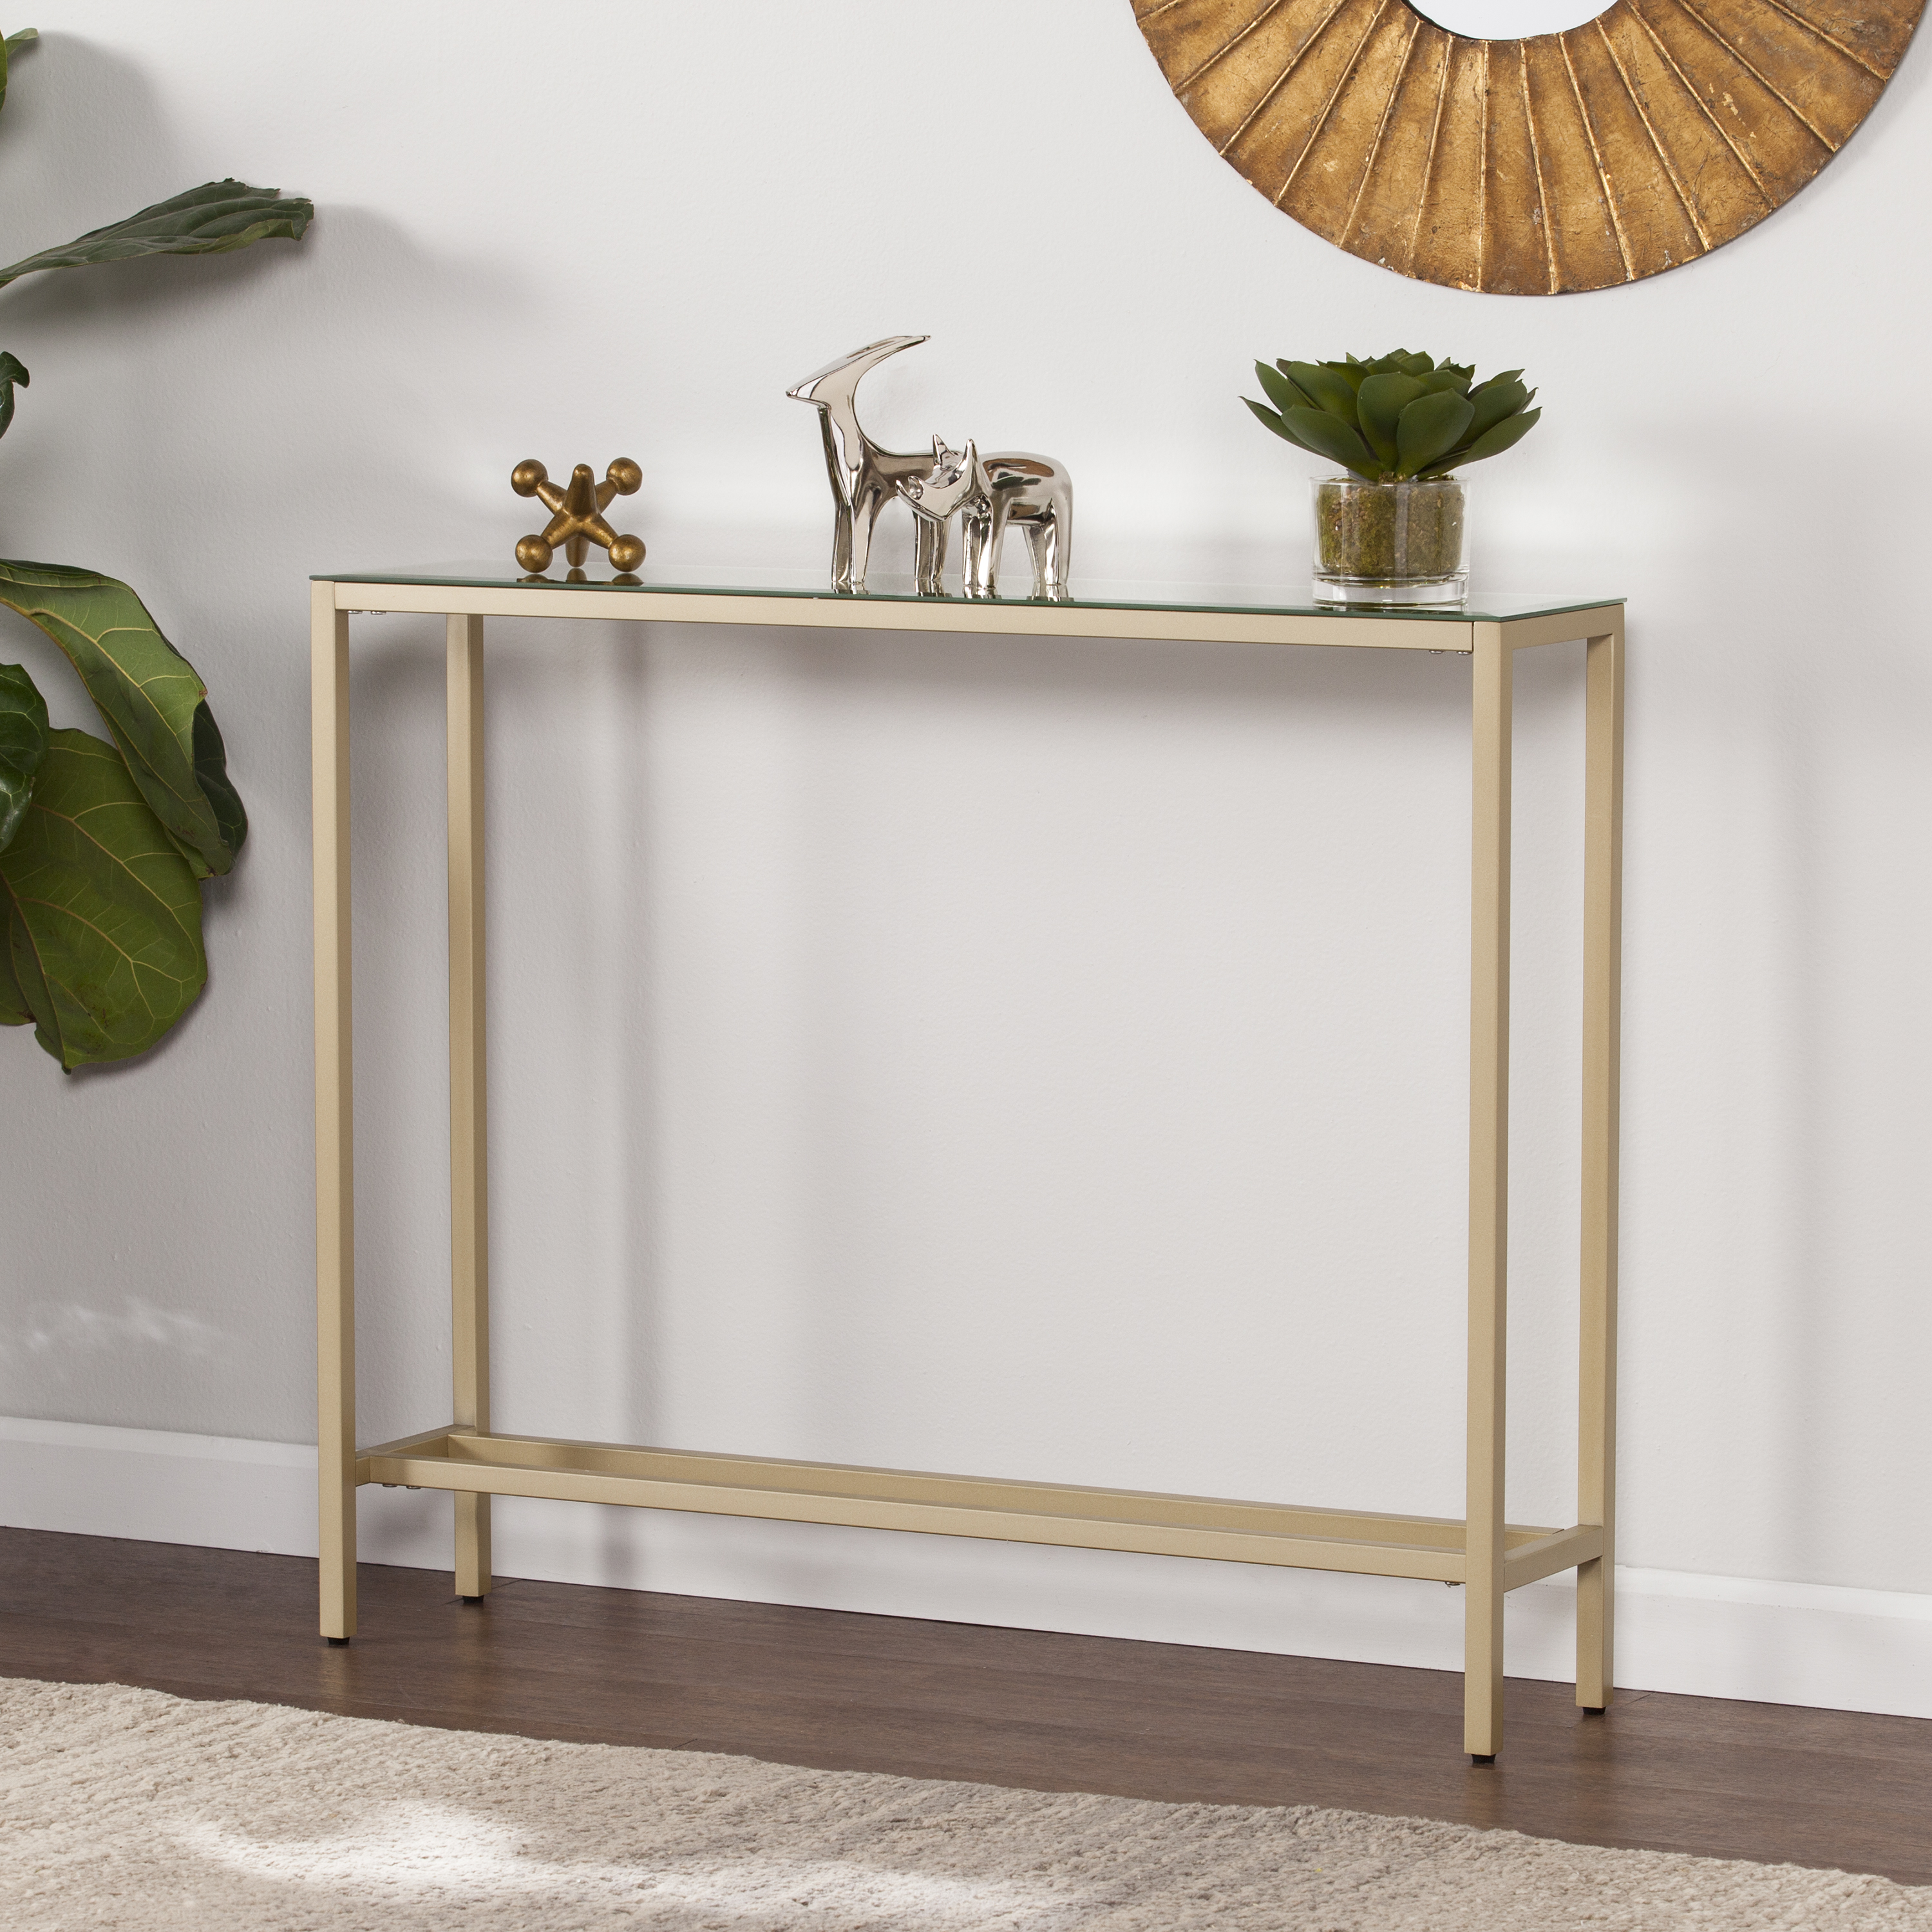 southern enterprises derkkin narrow console table mirrored top gold accent seaside themed lighting small round with screw legs circular patio cover living room furniture coffee